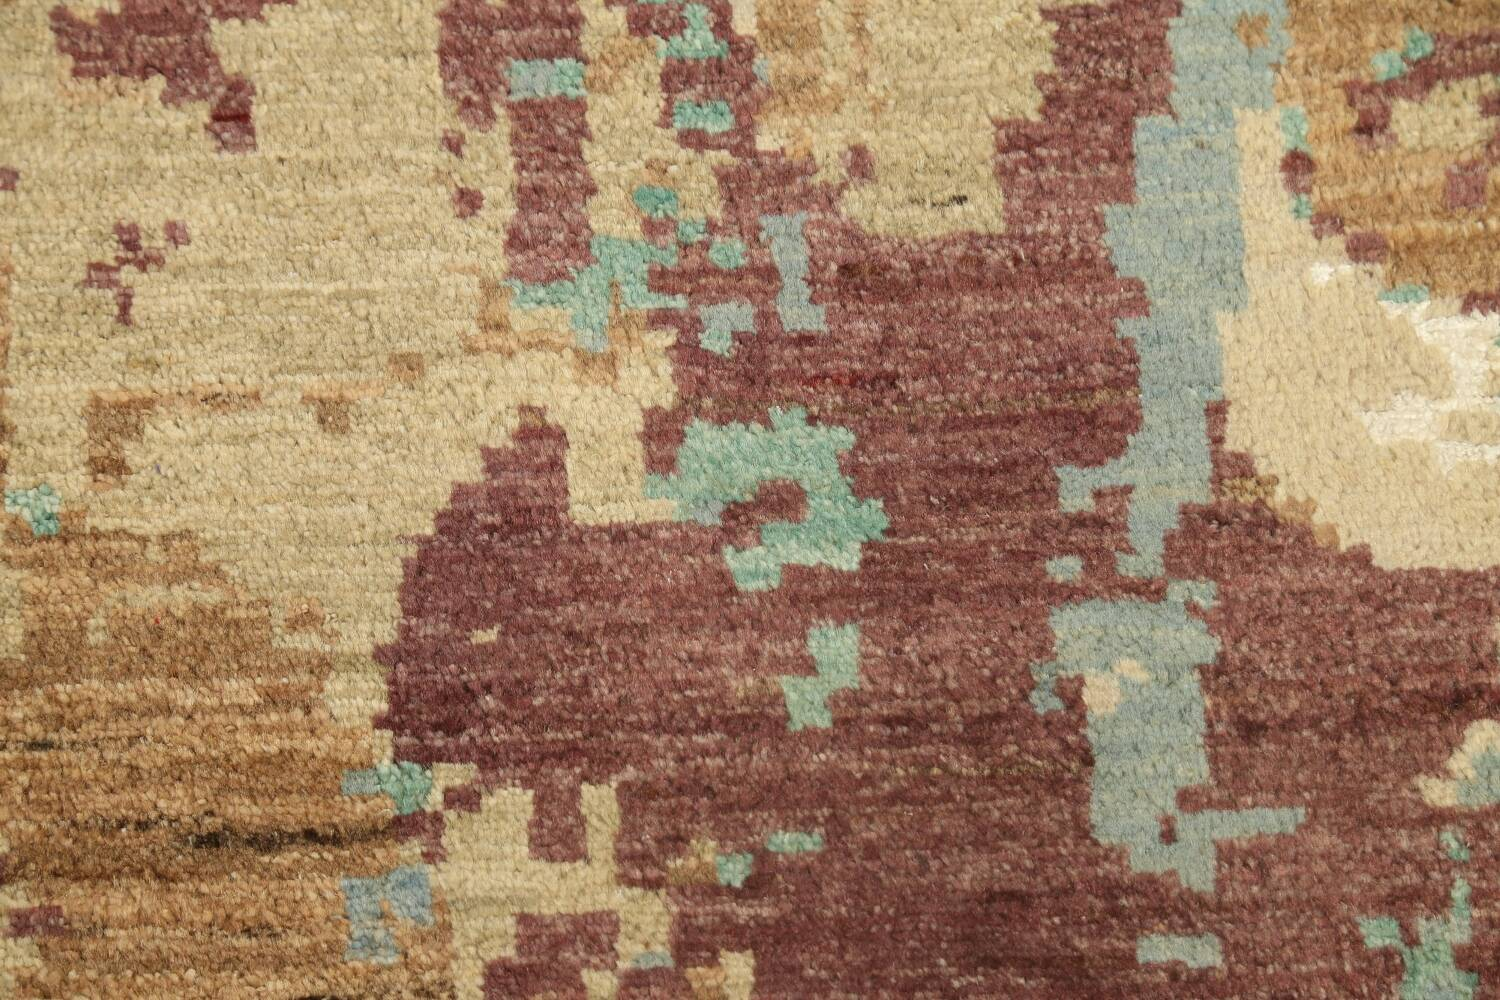 Vegetable Dye Contemporary Abstract Oriental Area Rug 6x9 image 9